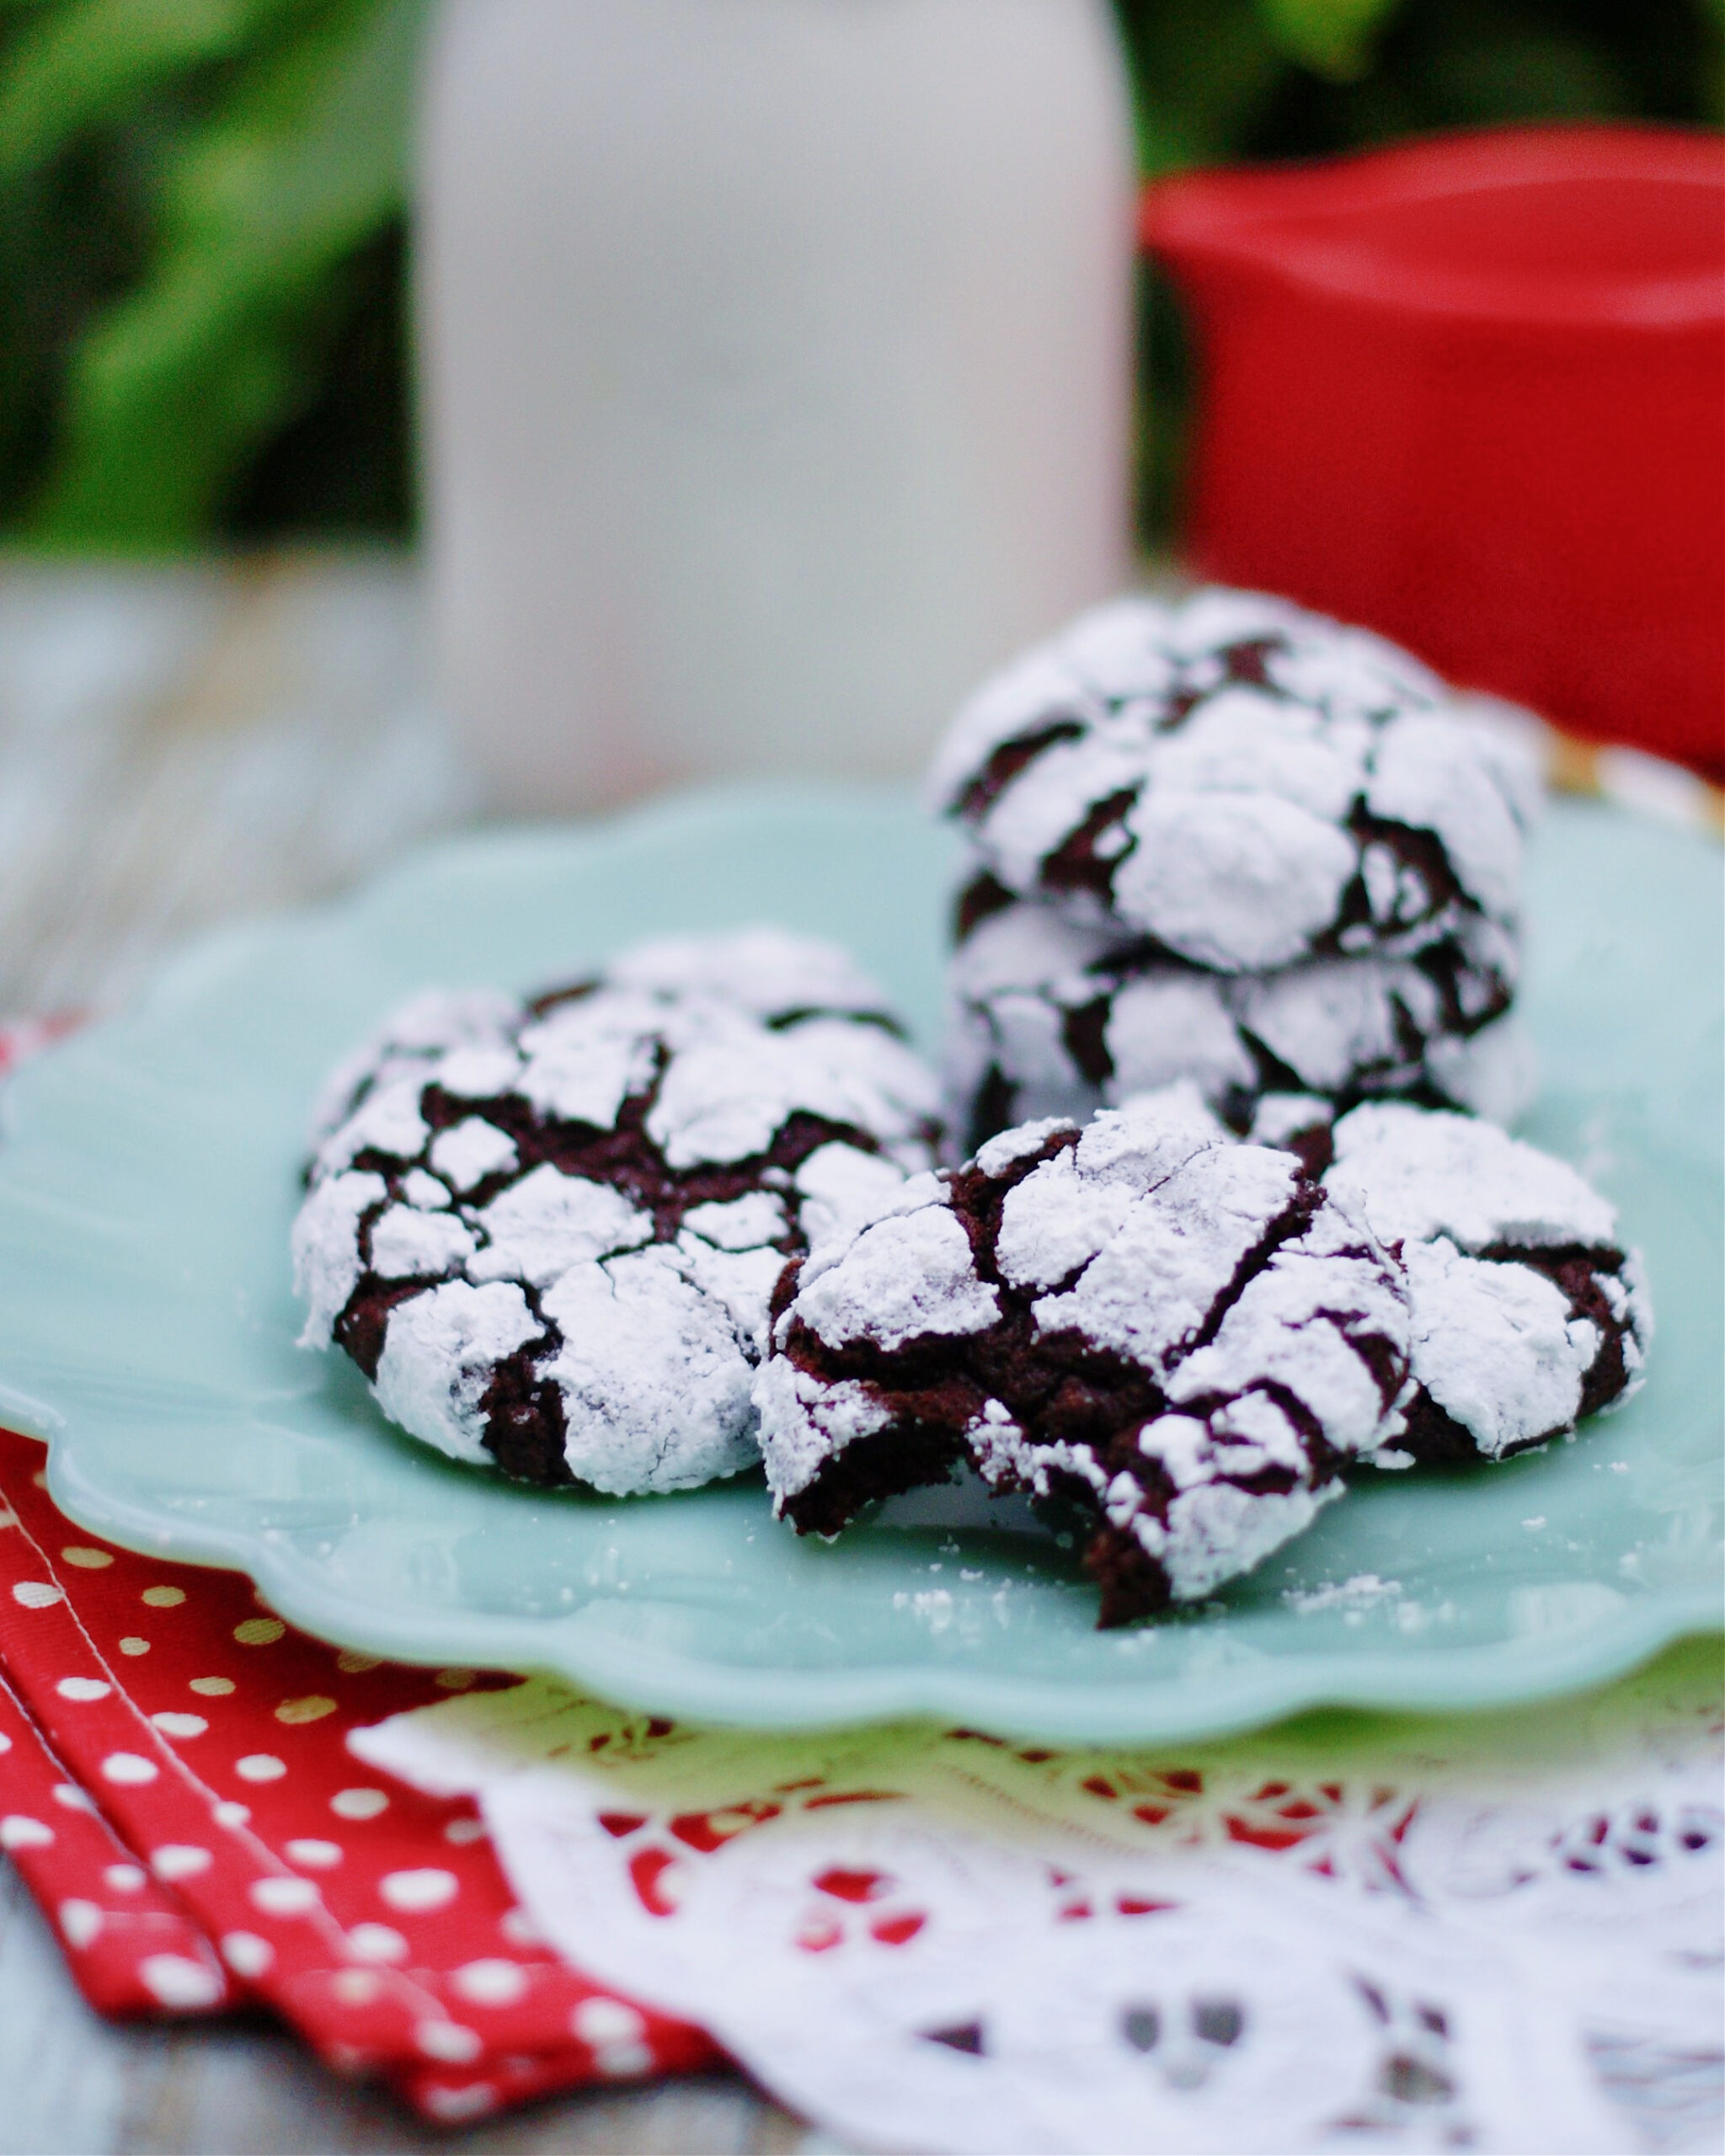 Easy, fudgy chocolate crinkle cookies made with dark cocoa powder